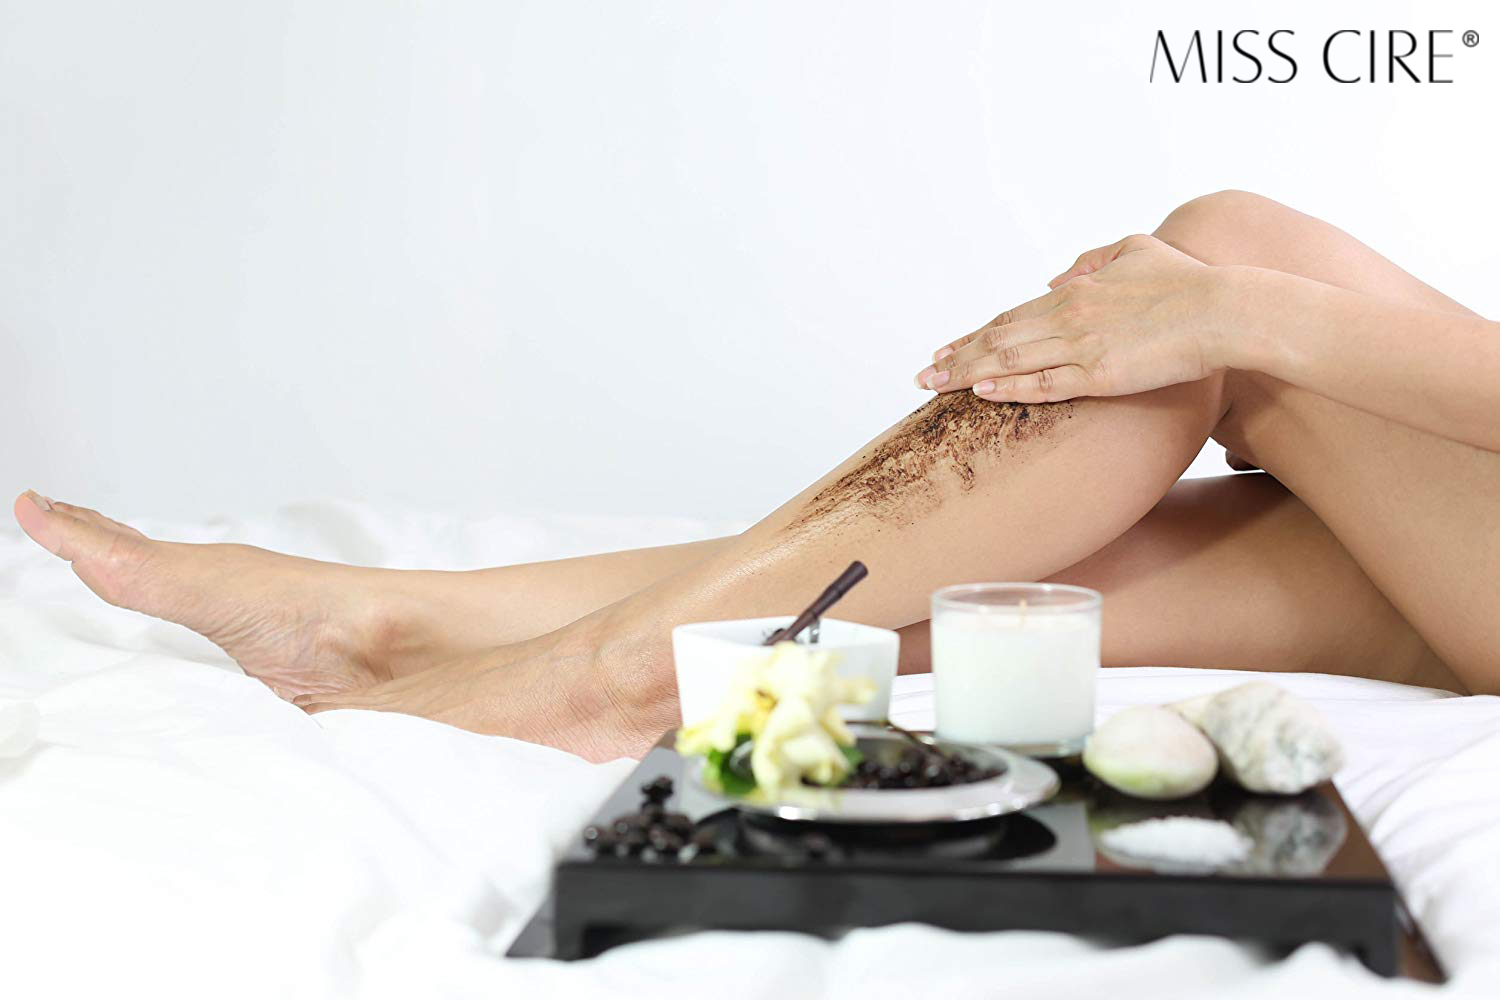 Should You Exfoliate Before Your Waxing Session?